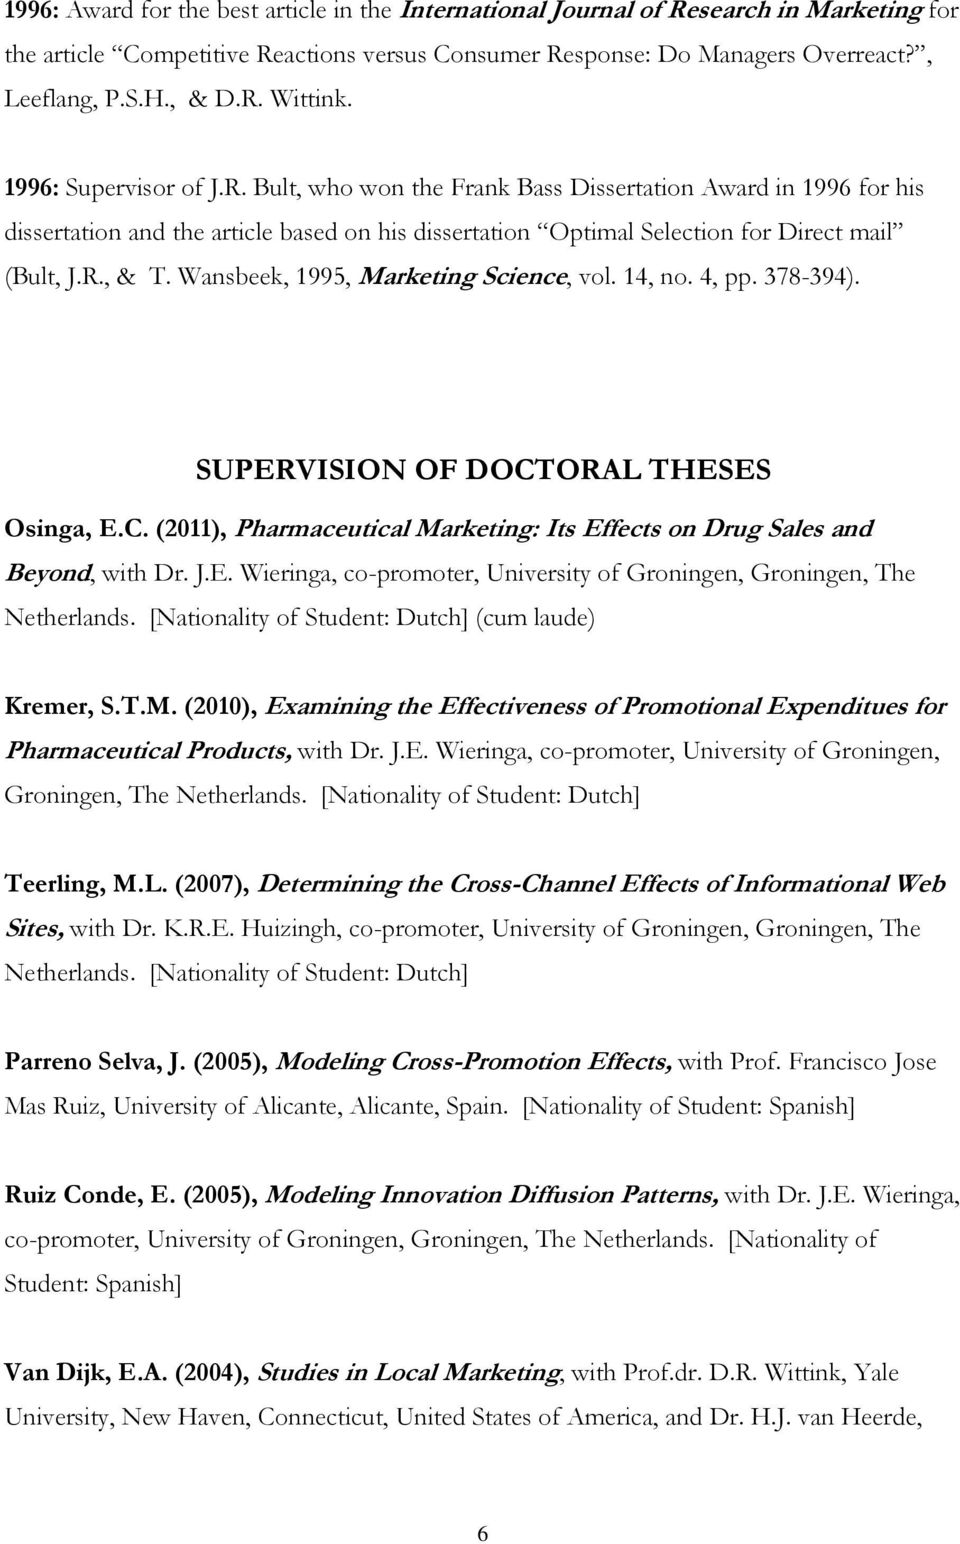 Wansbeek, 1995, Marketing Science, vol. 14, no. 4, pp. 378-394). SUPERVISION OF DOCTORAL THESES Osinga, E.C. (2011), Pharmaceutical Marketing: Its Effects on Drug Sales and Beyond, with Dr. J.E. Wieringa, co-promoter, University of Groningen, Groningen, The Netherlands.